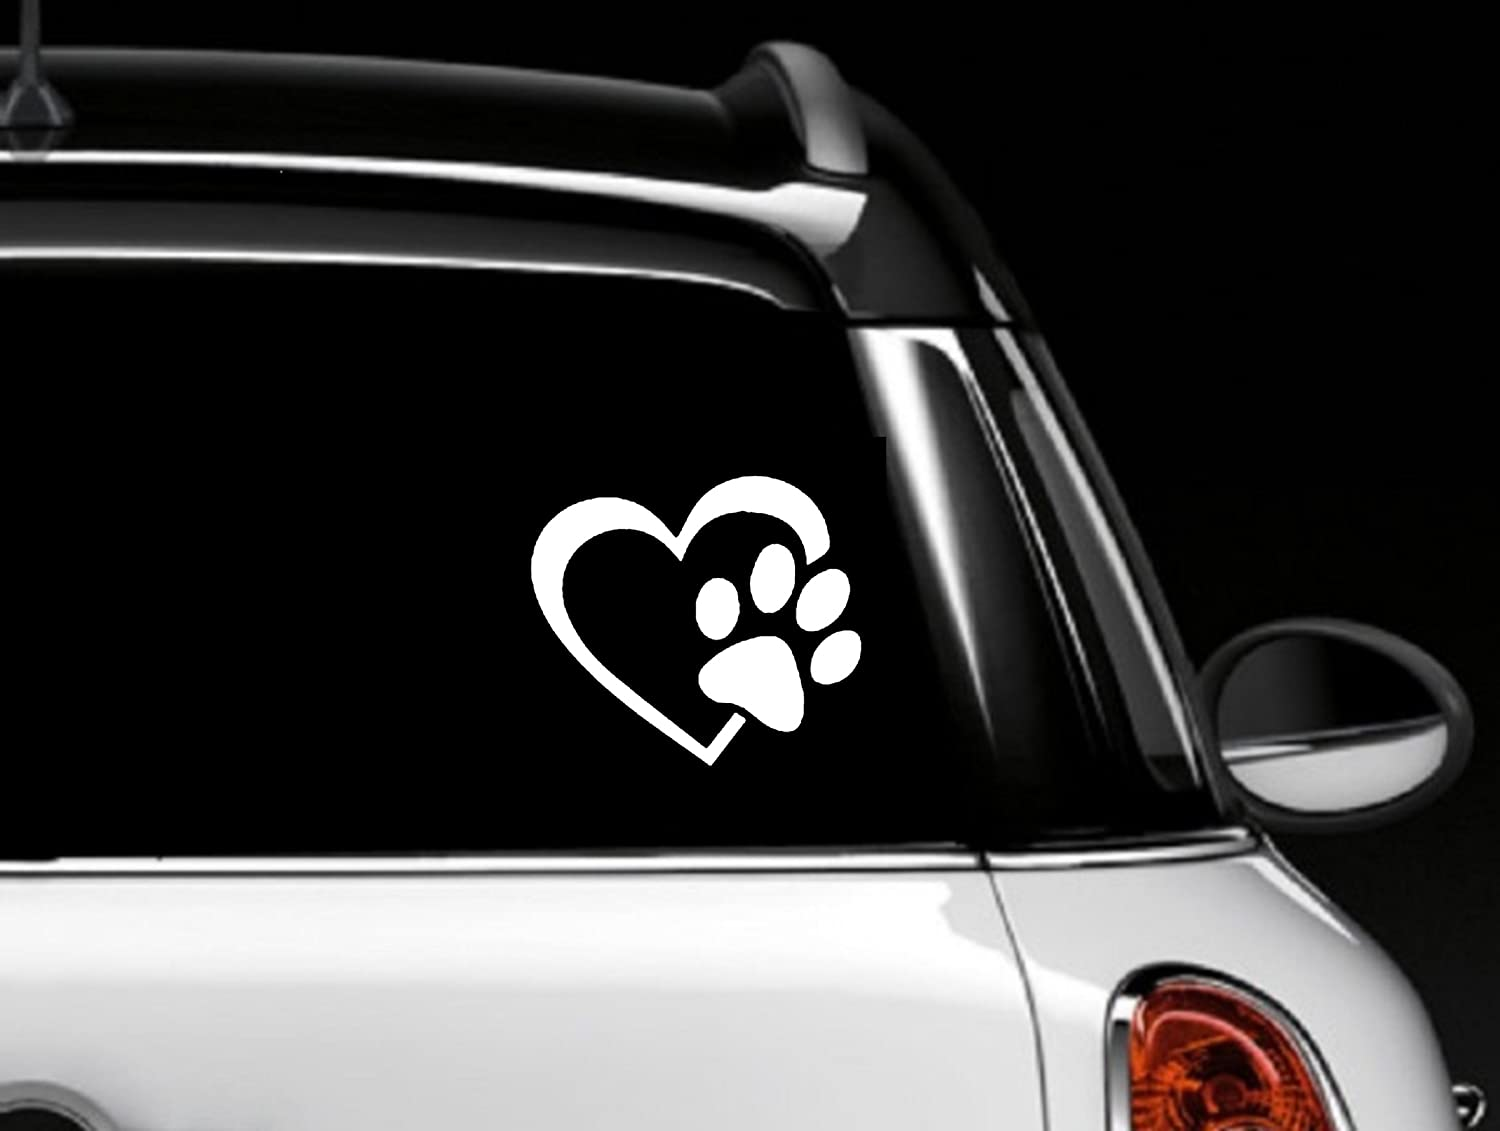 4 White Walls Laptops Decal Dude KWS-HWDP-4W Decalgeek HEART with DOG PAW Puppy Love Vinyl Decal Window Sticker for Cars Trucks 4 White Laptops Windows